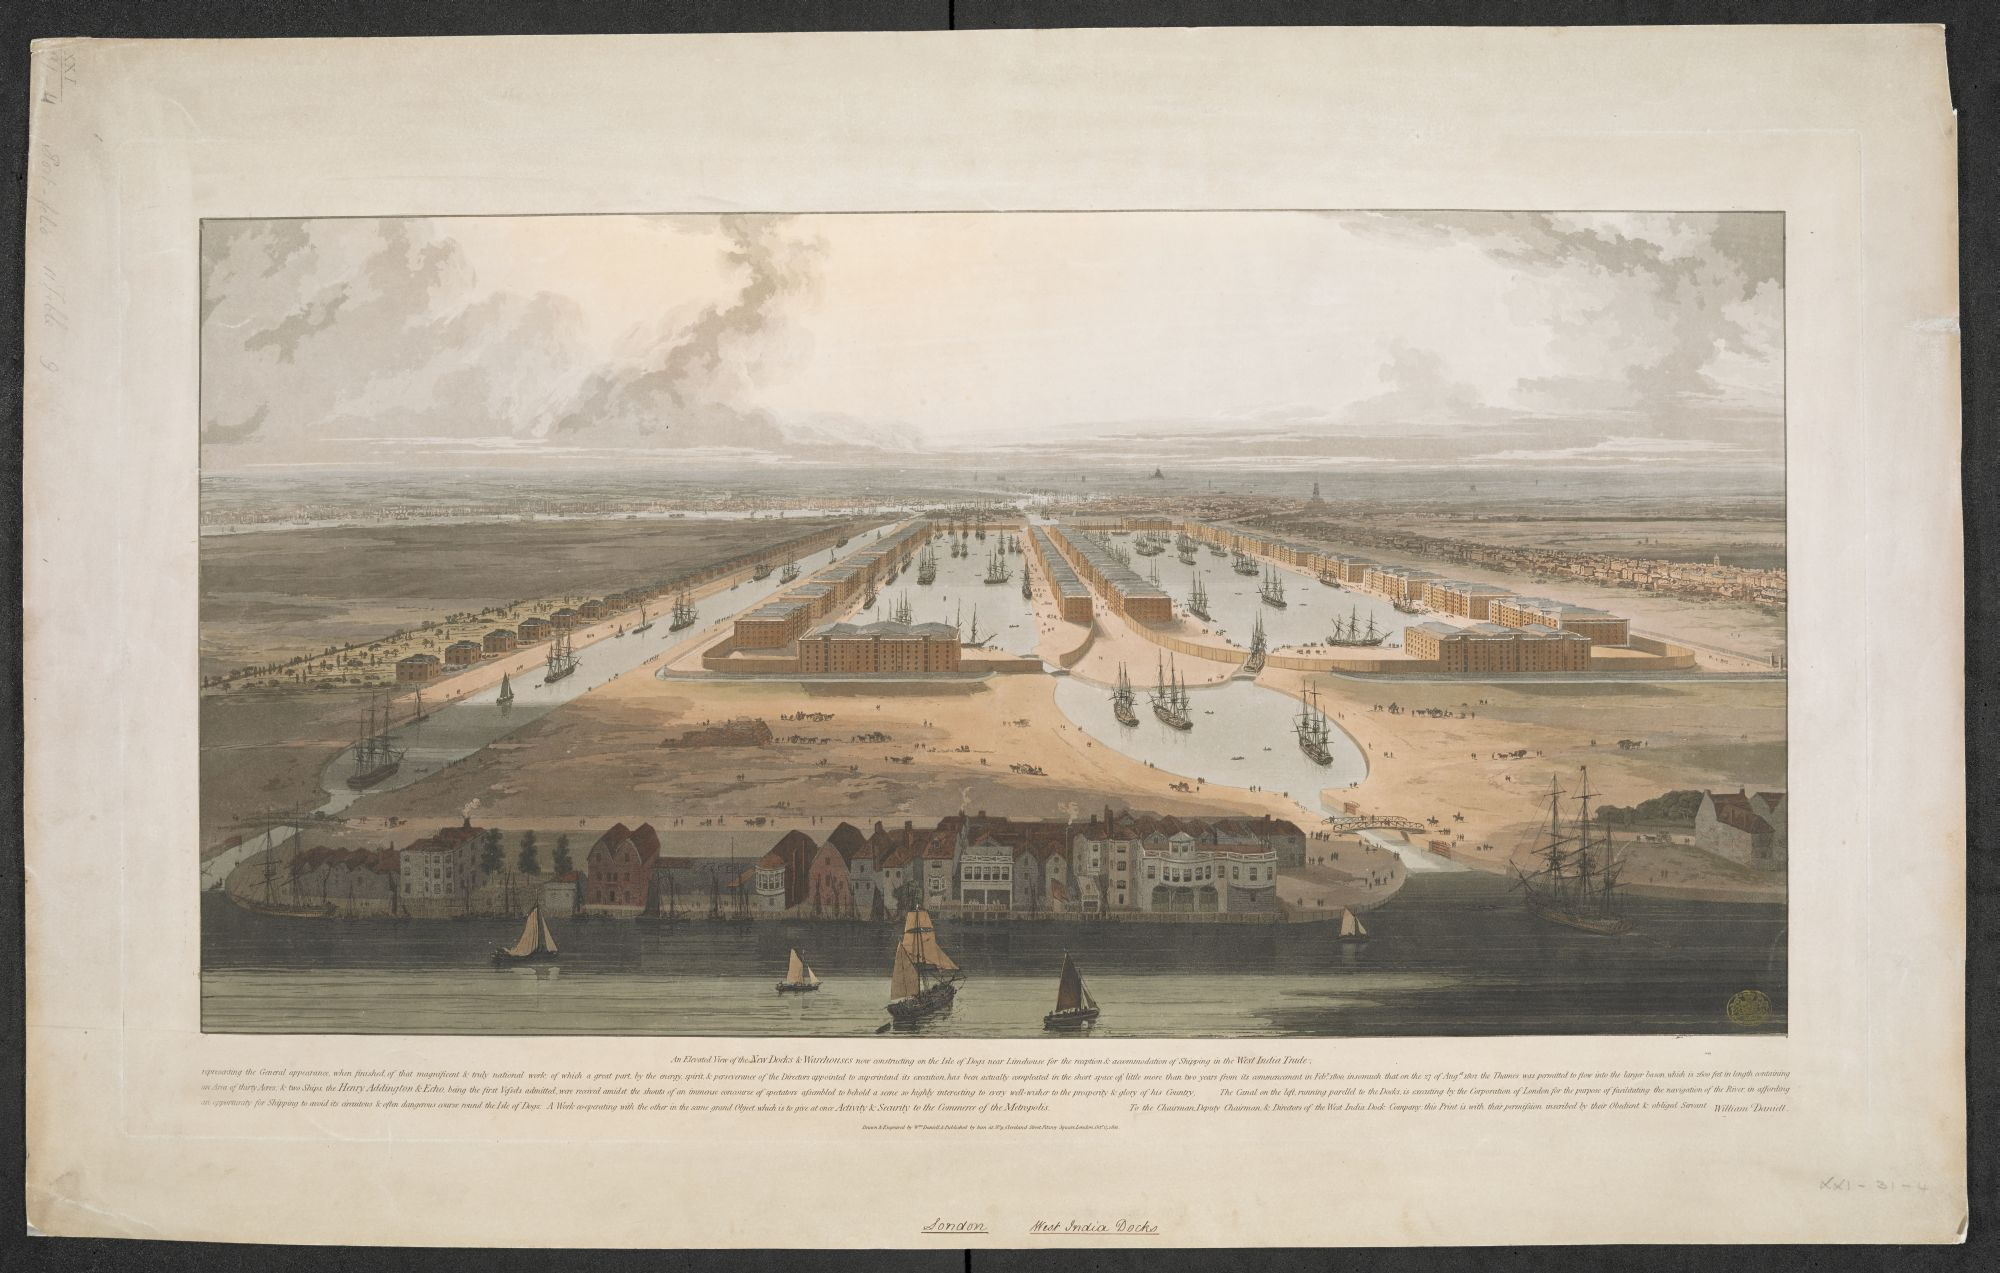 William Daniell, An Elevated View of the New Docks & Warehouses now constructing on the Isle of Dogs near Limehouse for the reception & accommodation of Shipping in the West India Trade, published by William Daniell, London, 1802, aquatint with hand colouring, plate 49.2 x 85.6 cm, on sheet 59.3 x 94.8 cm, British Library, London, Maps K.Top.21.31.4.11 TAB.